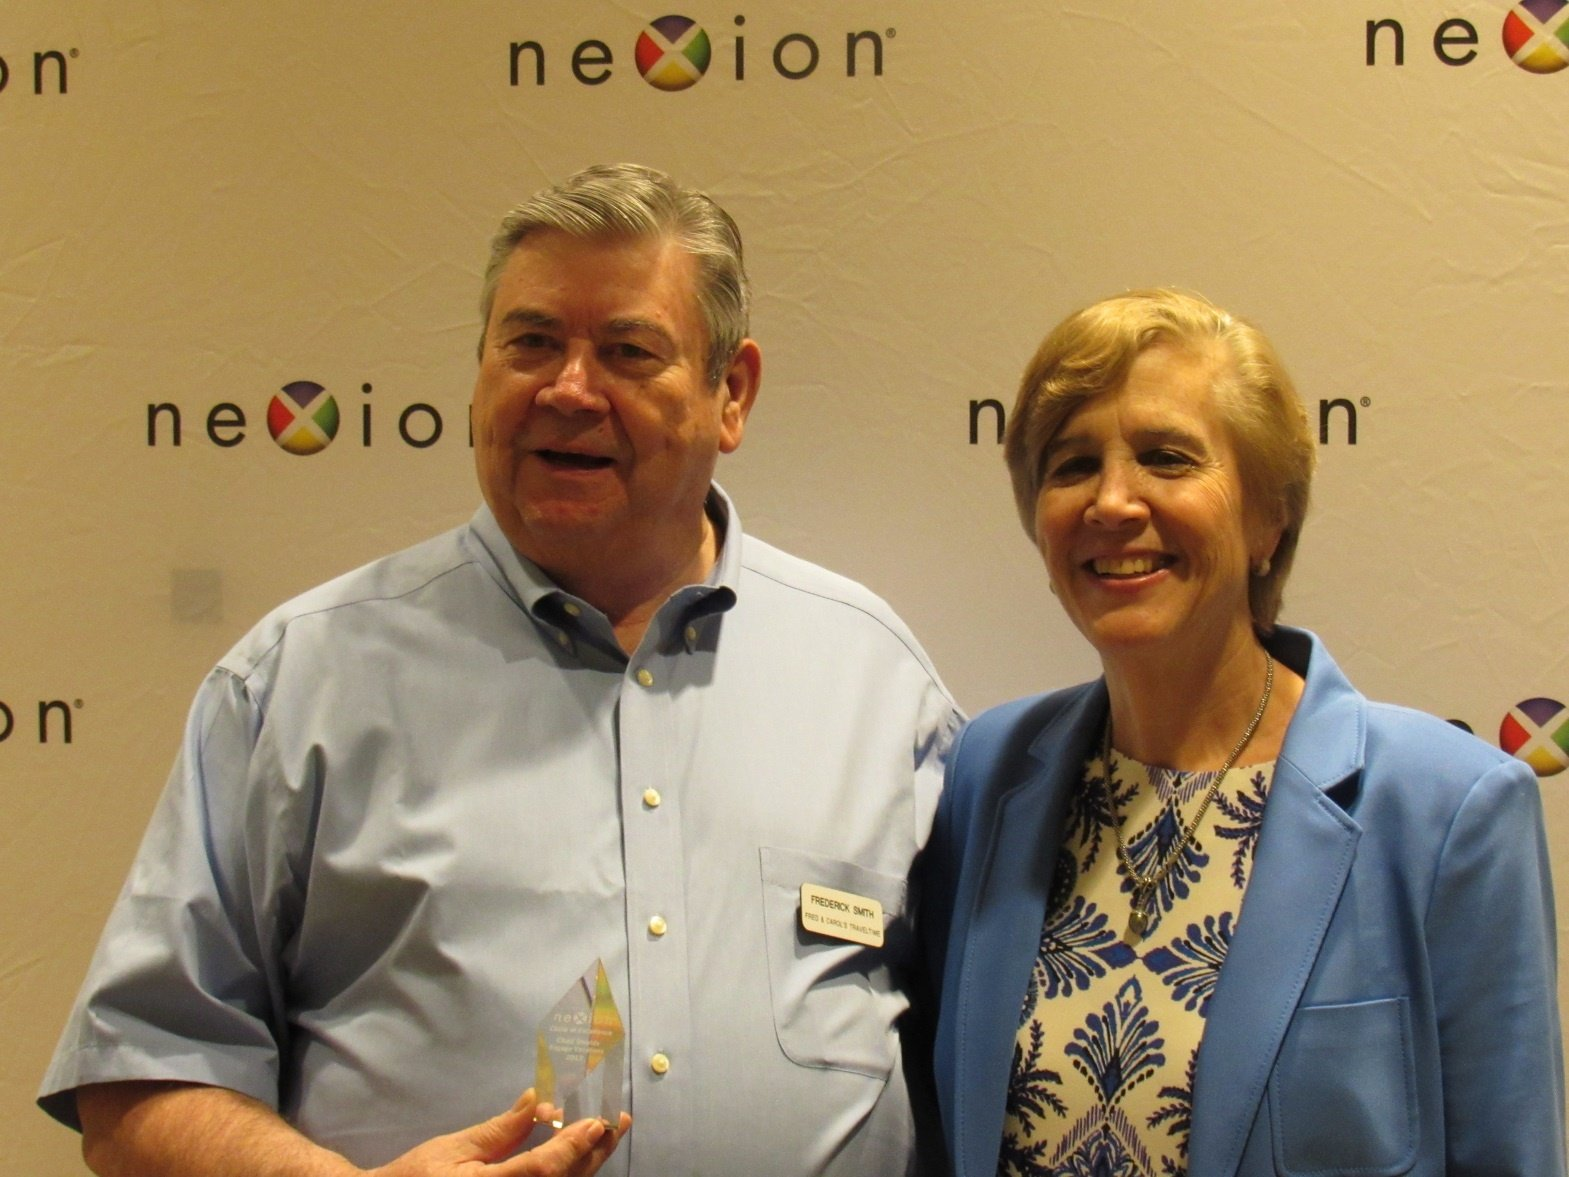 Picture shows Fred Smith, Circle of Excellence Award, and Nexion President, Jackie Friedman